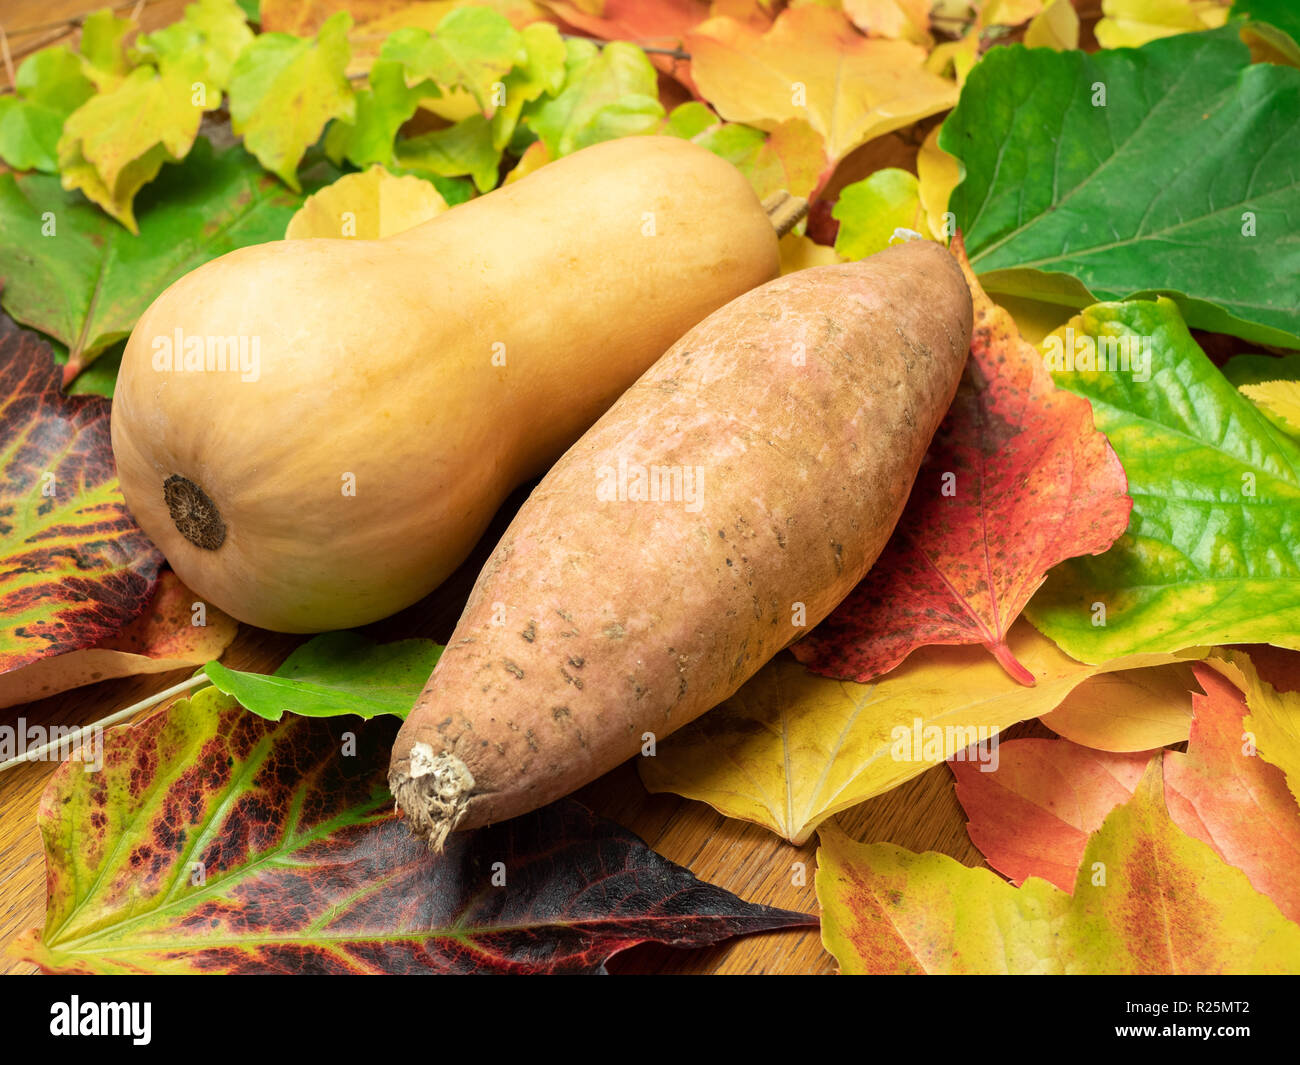 A butternut squash and a sweet patato (seasonal vegetable) are placed on autumn leaves in green, red, orange and yellow colours. Close-up. Stock Photo